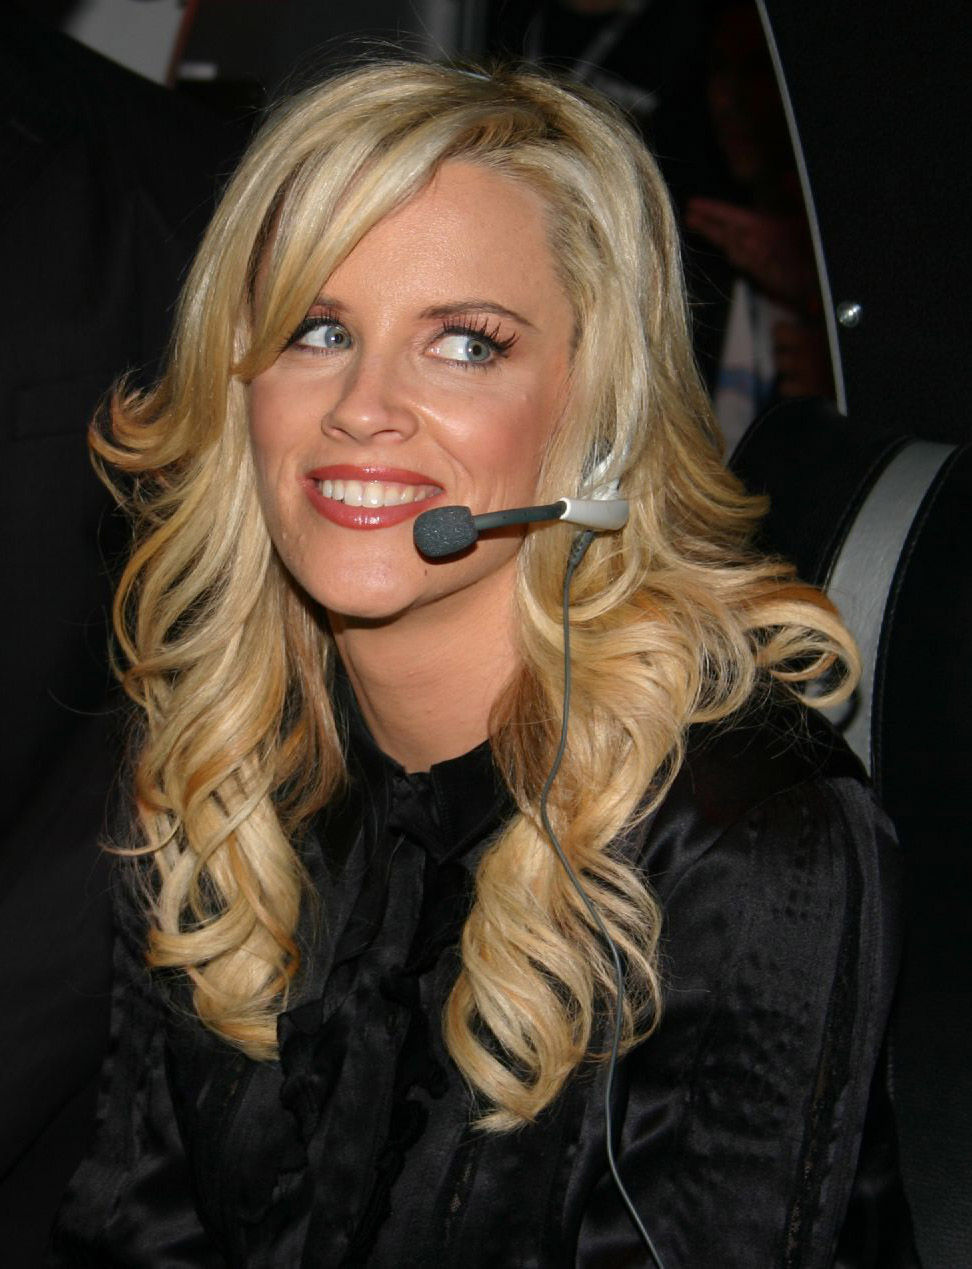 Photo of Jenny McCarthy: American model, comedian, actress, author, activist, and game show host